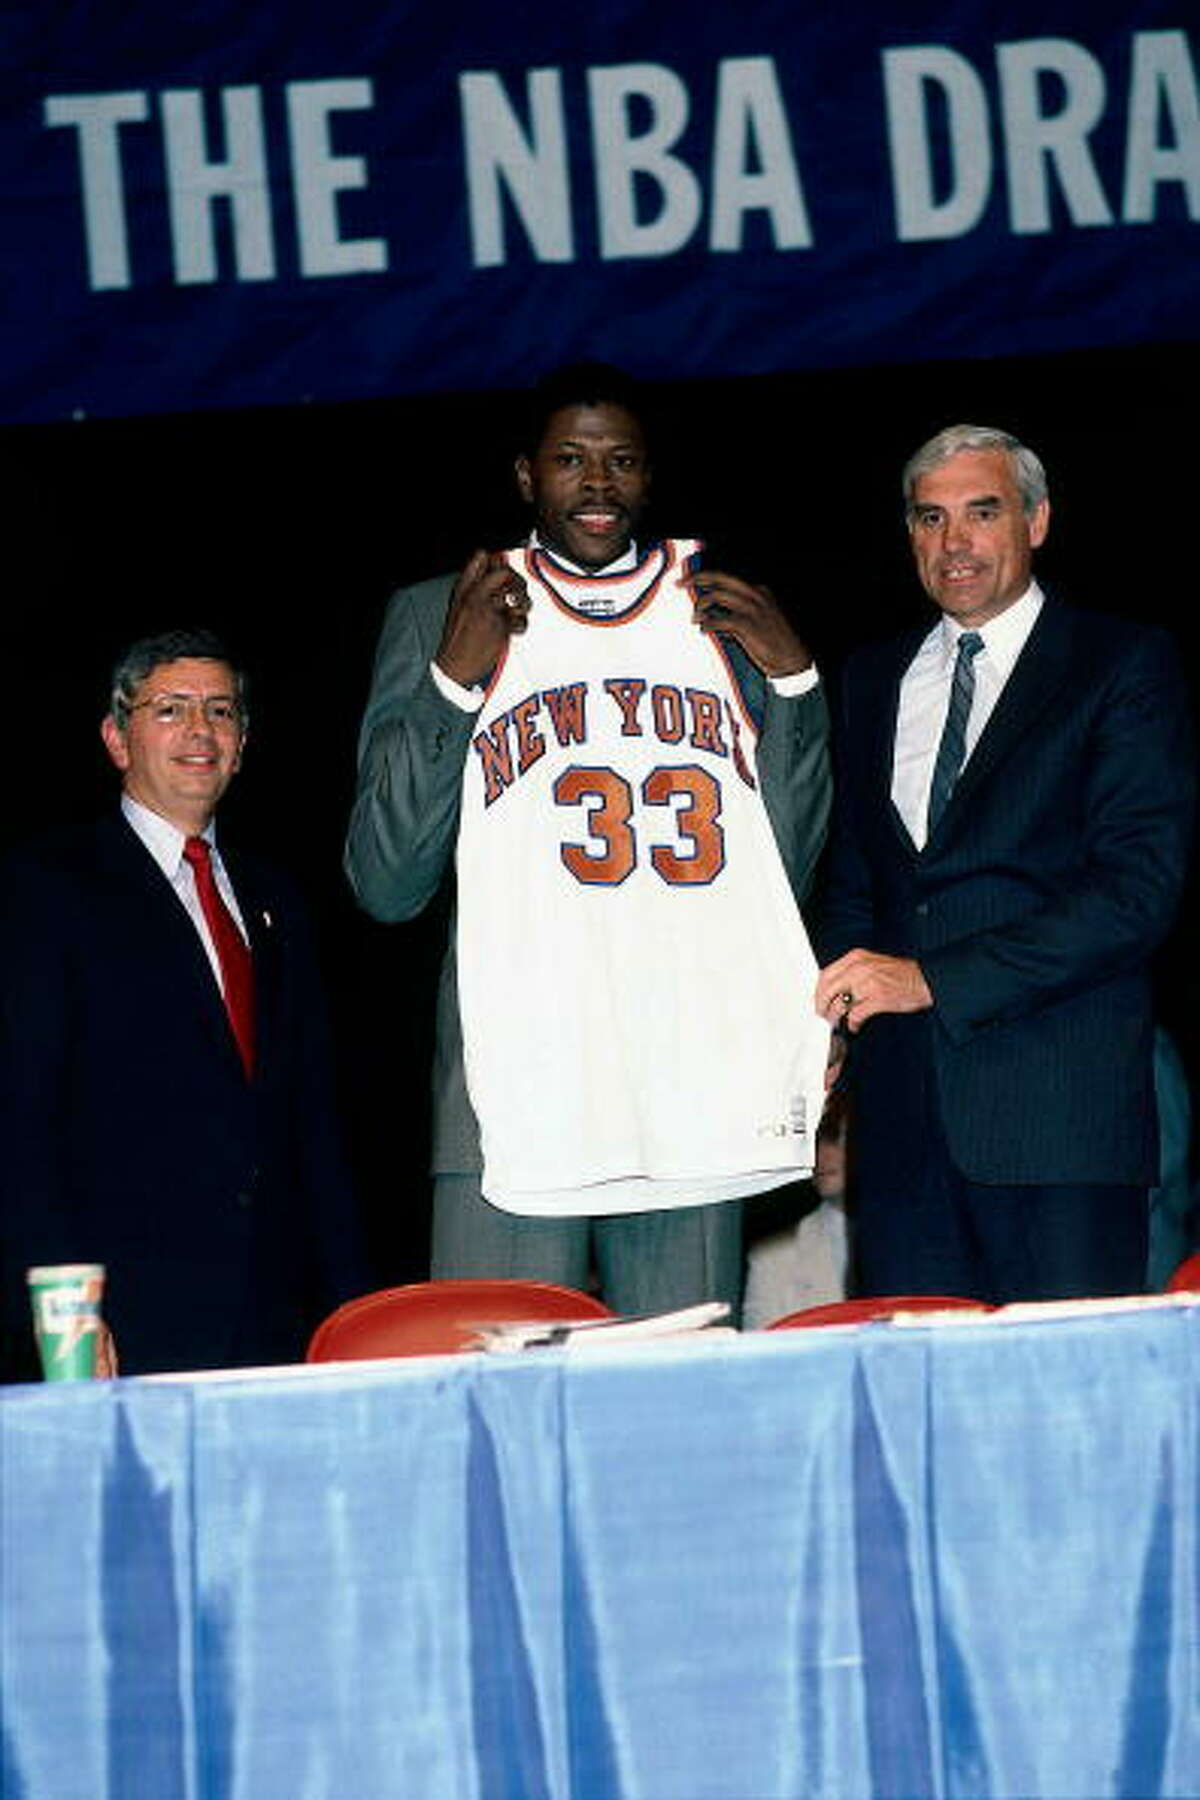 """1985 draft lottery This was the first lottery - thanks in large part to the Rockets' bad job of tanking the year before to get Hakeem Olajuwon - and the prize was Patrick Ewing. The Georgetown center was a household name after one national title and three trips to the NCAA championship game and the franchise that got him would be instantly better. The Knicks, playing in the league's biggest market, were terrible and desperately needed a franchise player. Naturally, they won the lottery, and conspiracy theories about a frozen or bent envelope with New York's logo inside it have raged on ever since. This is such a famous conspiracy theory that this picture of Ewing, NBA commissioner David Stern and then-Knicks general manager Dave DeBusschere is on the cover of the book """"The 30 Greatest Sports Conspiracy Theories of All Time."""""""